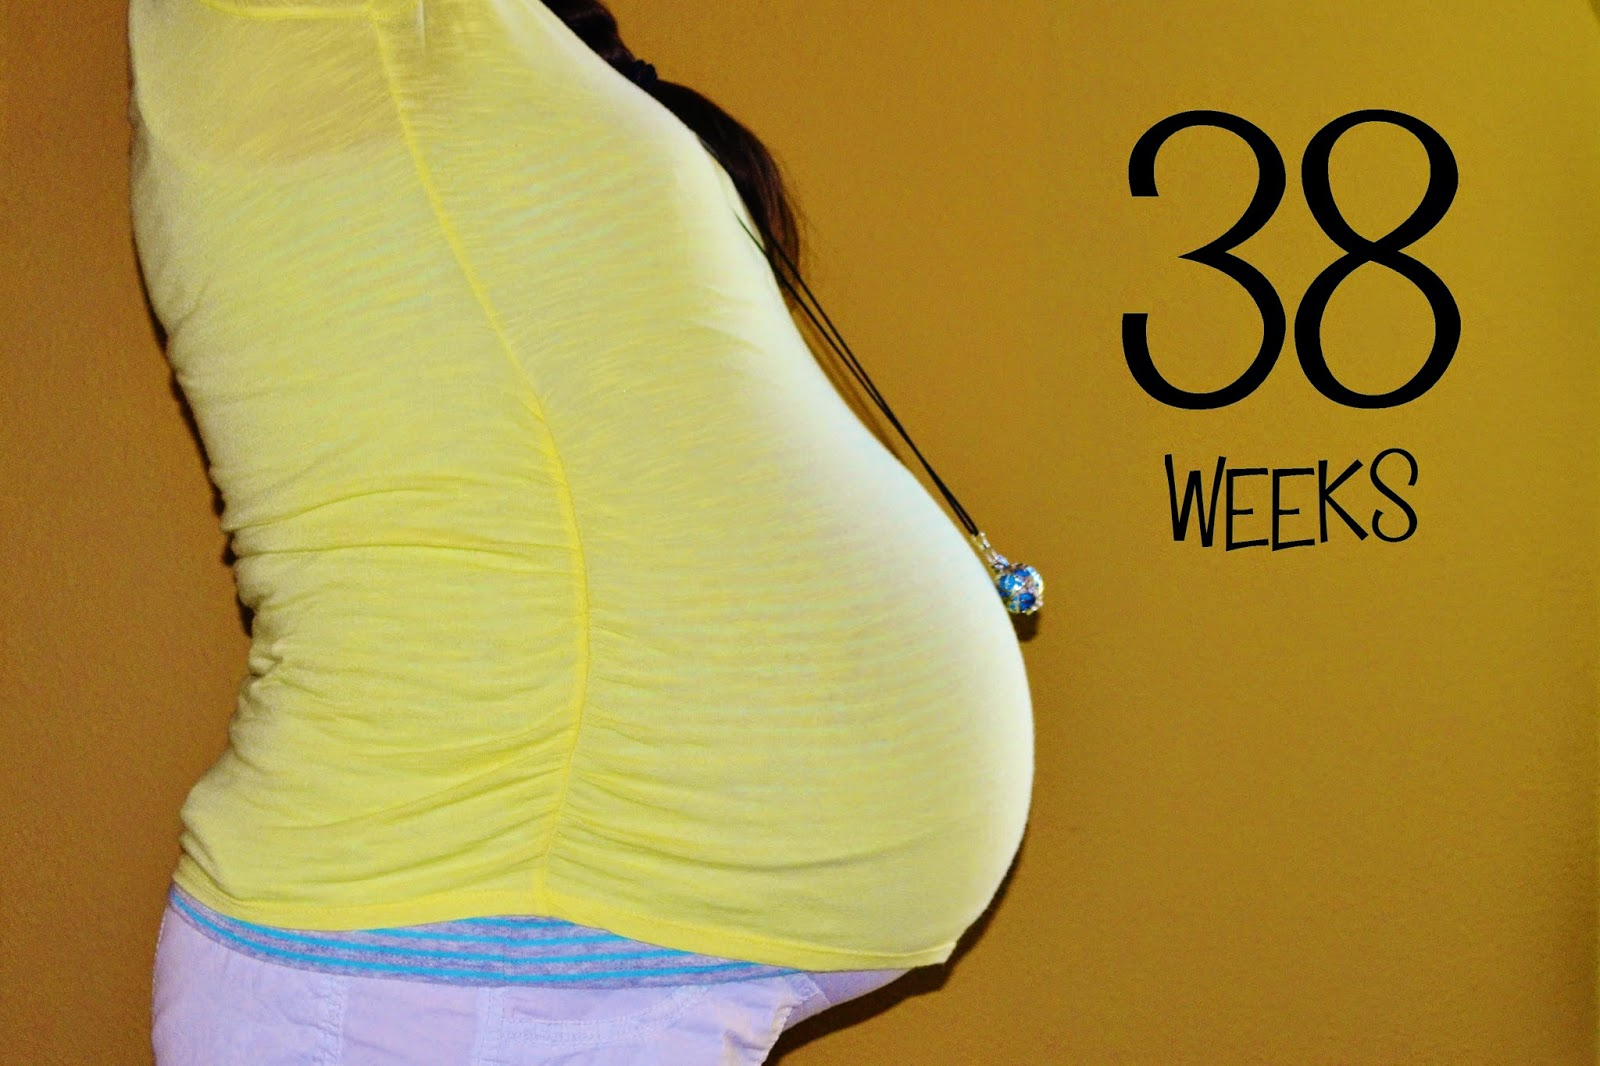 Surrogate pregnant belly at 38 weeks